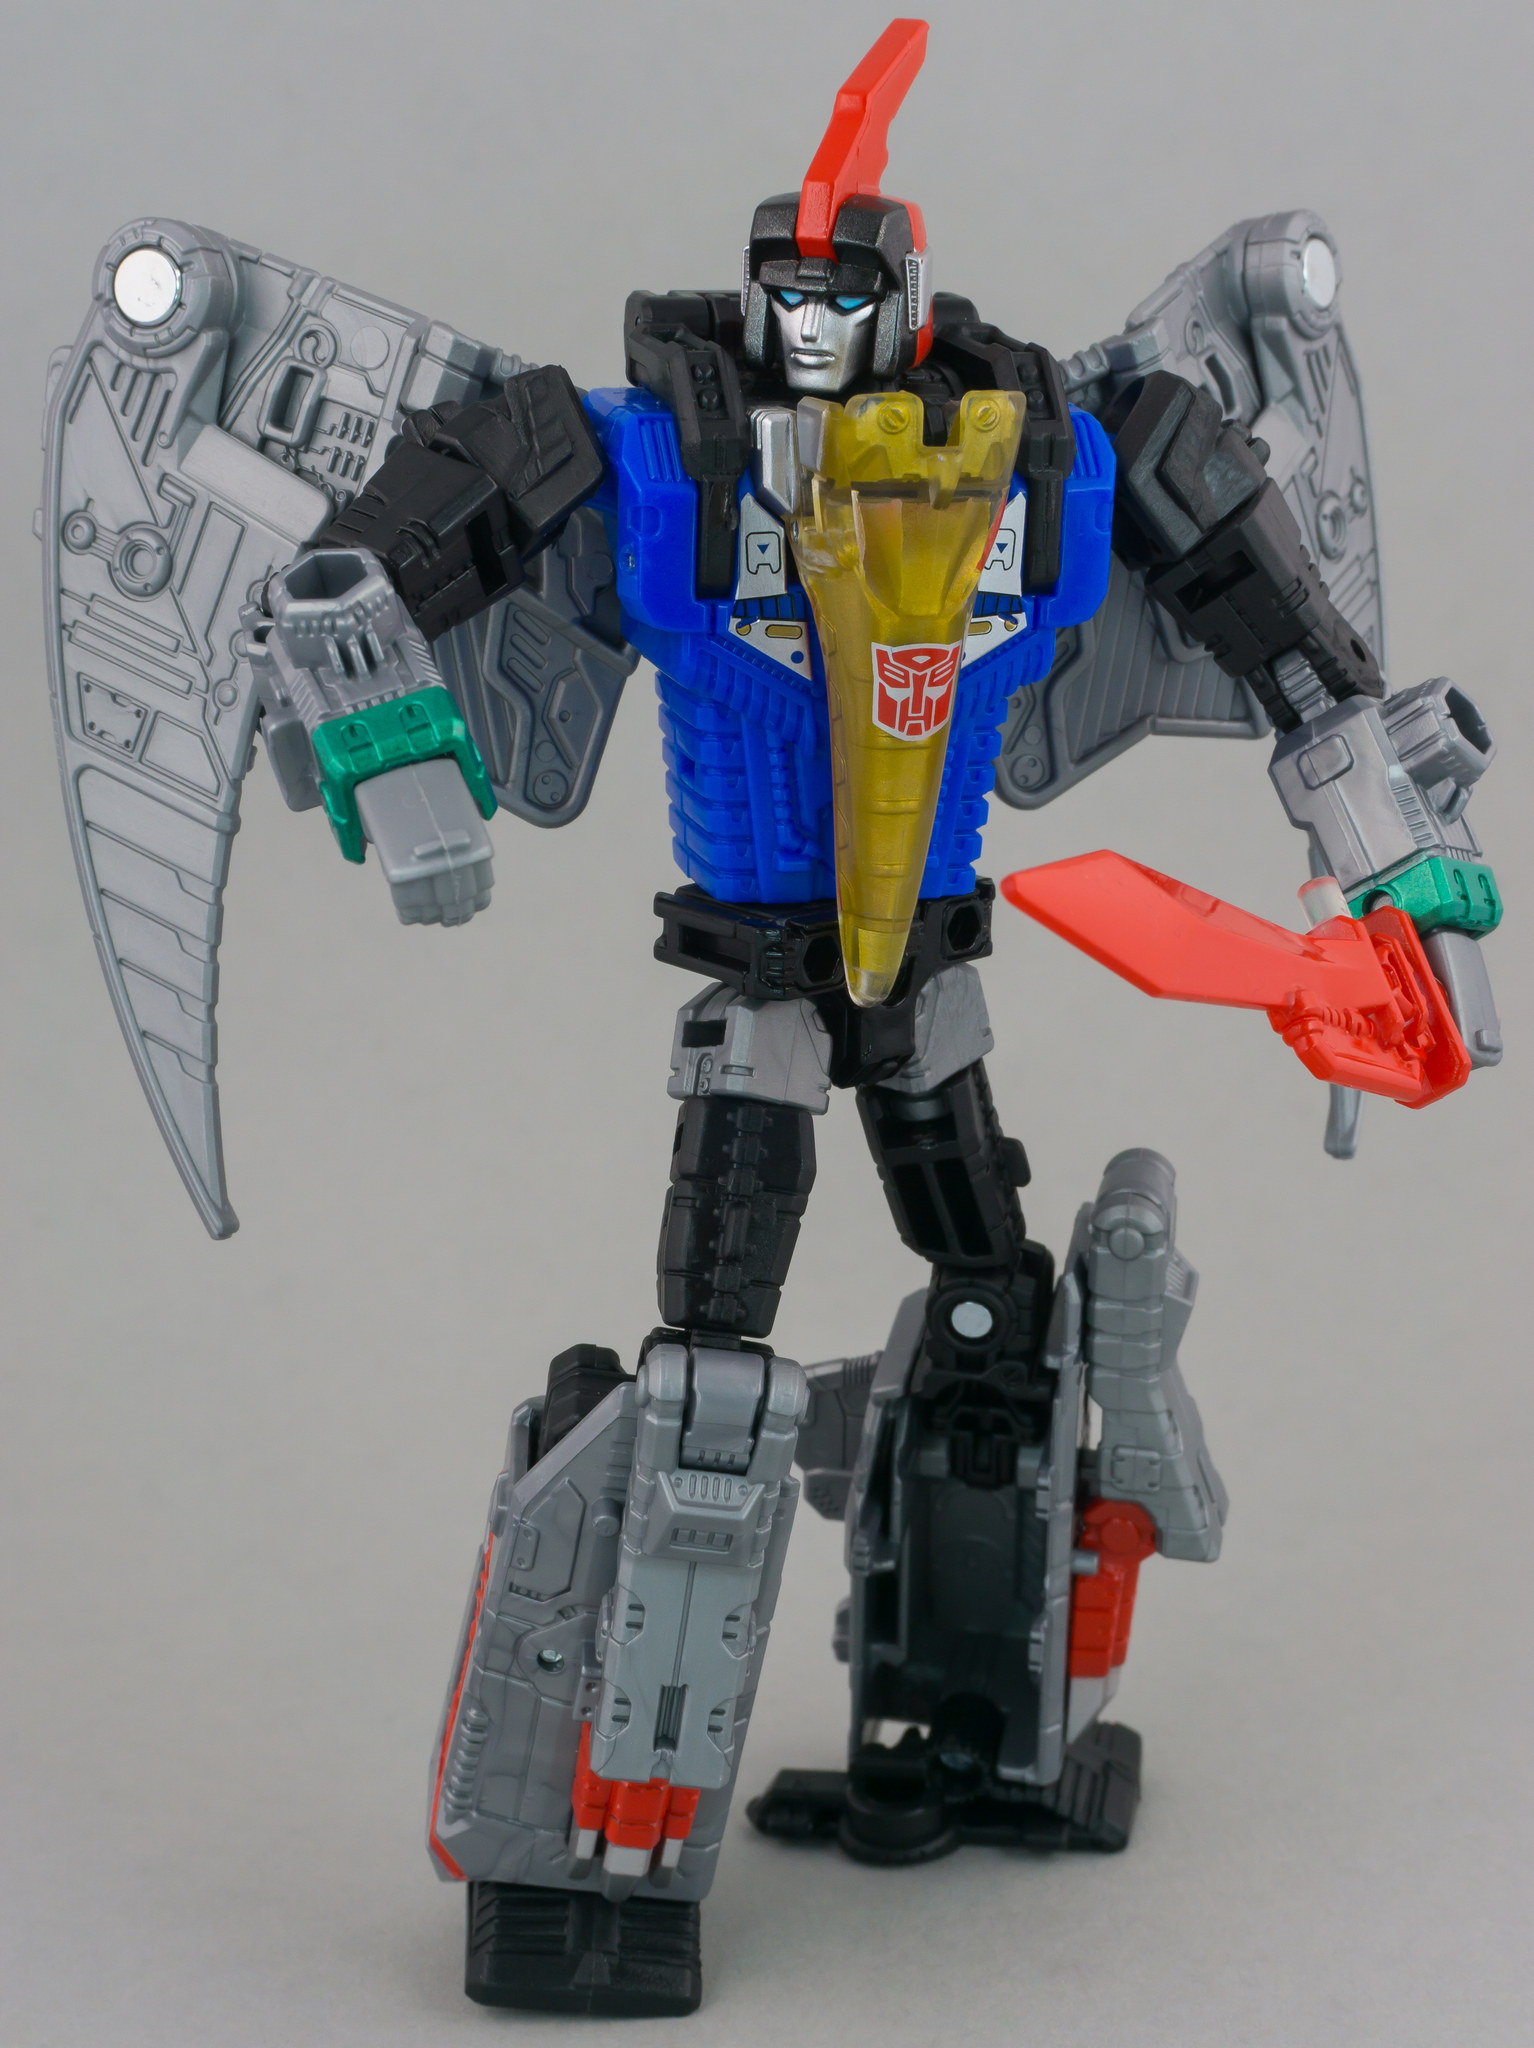 Swoop - Transformers Toys - TFW2005  |Transformers Swoop